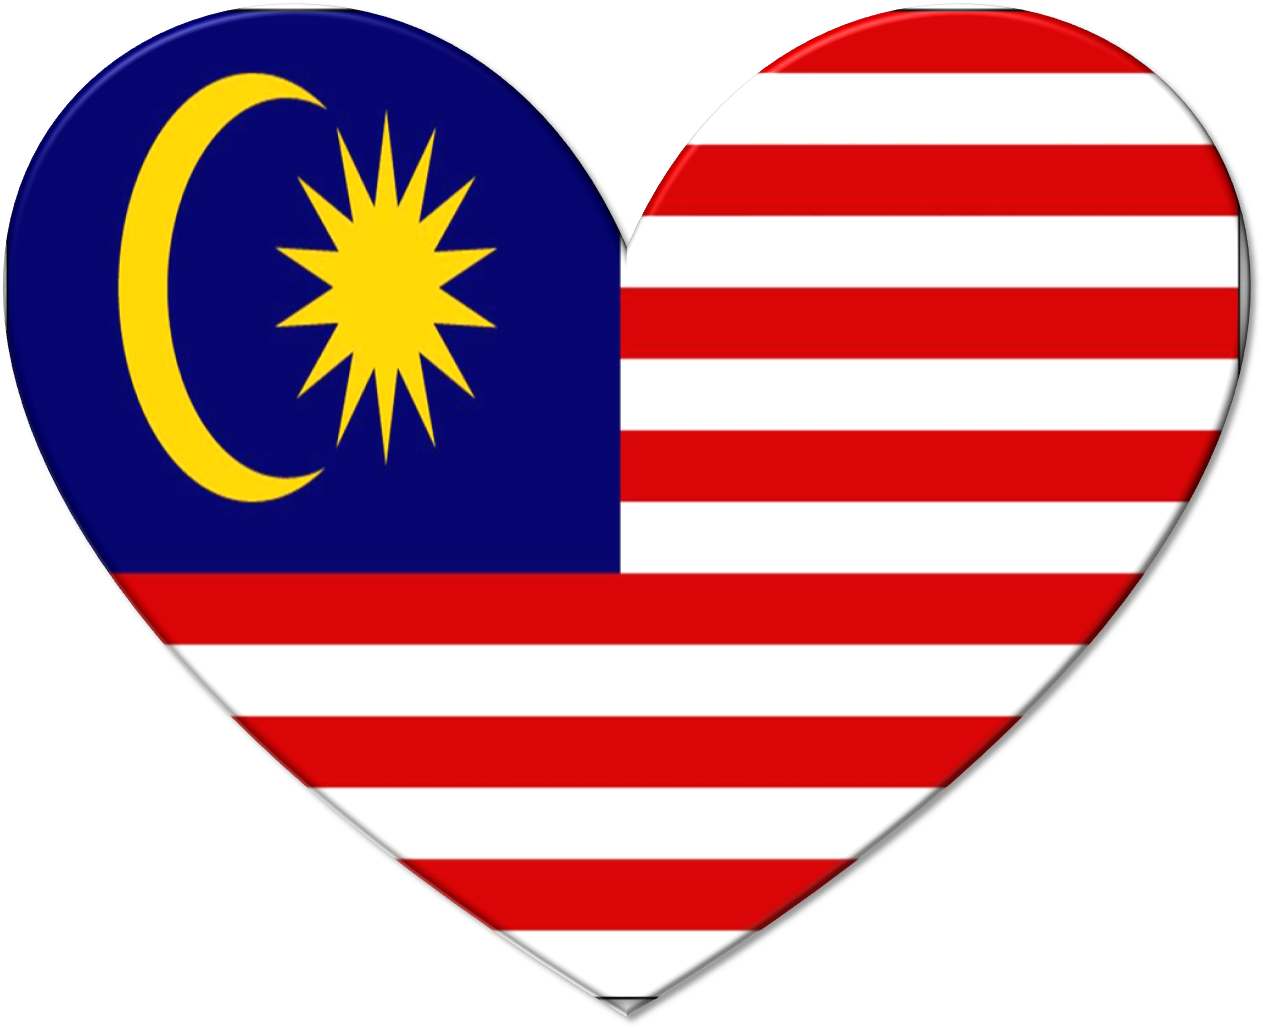 Malaysia Flag Wallpapers Top Free Malaysia Flag Backgrounds Wallpaperaccess